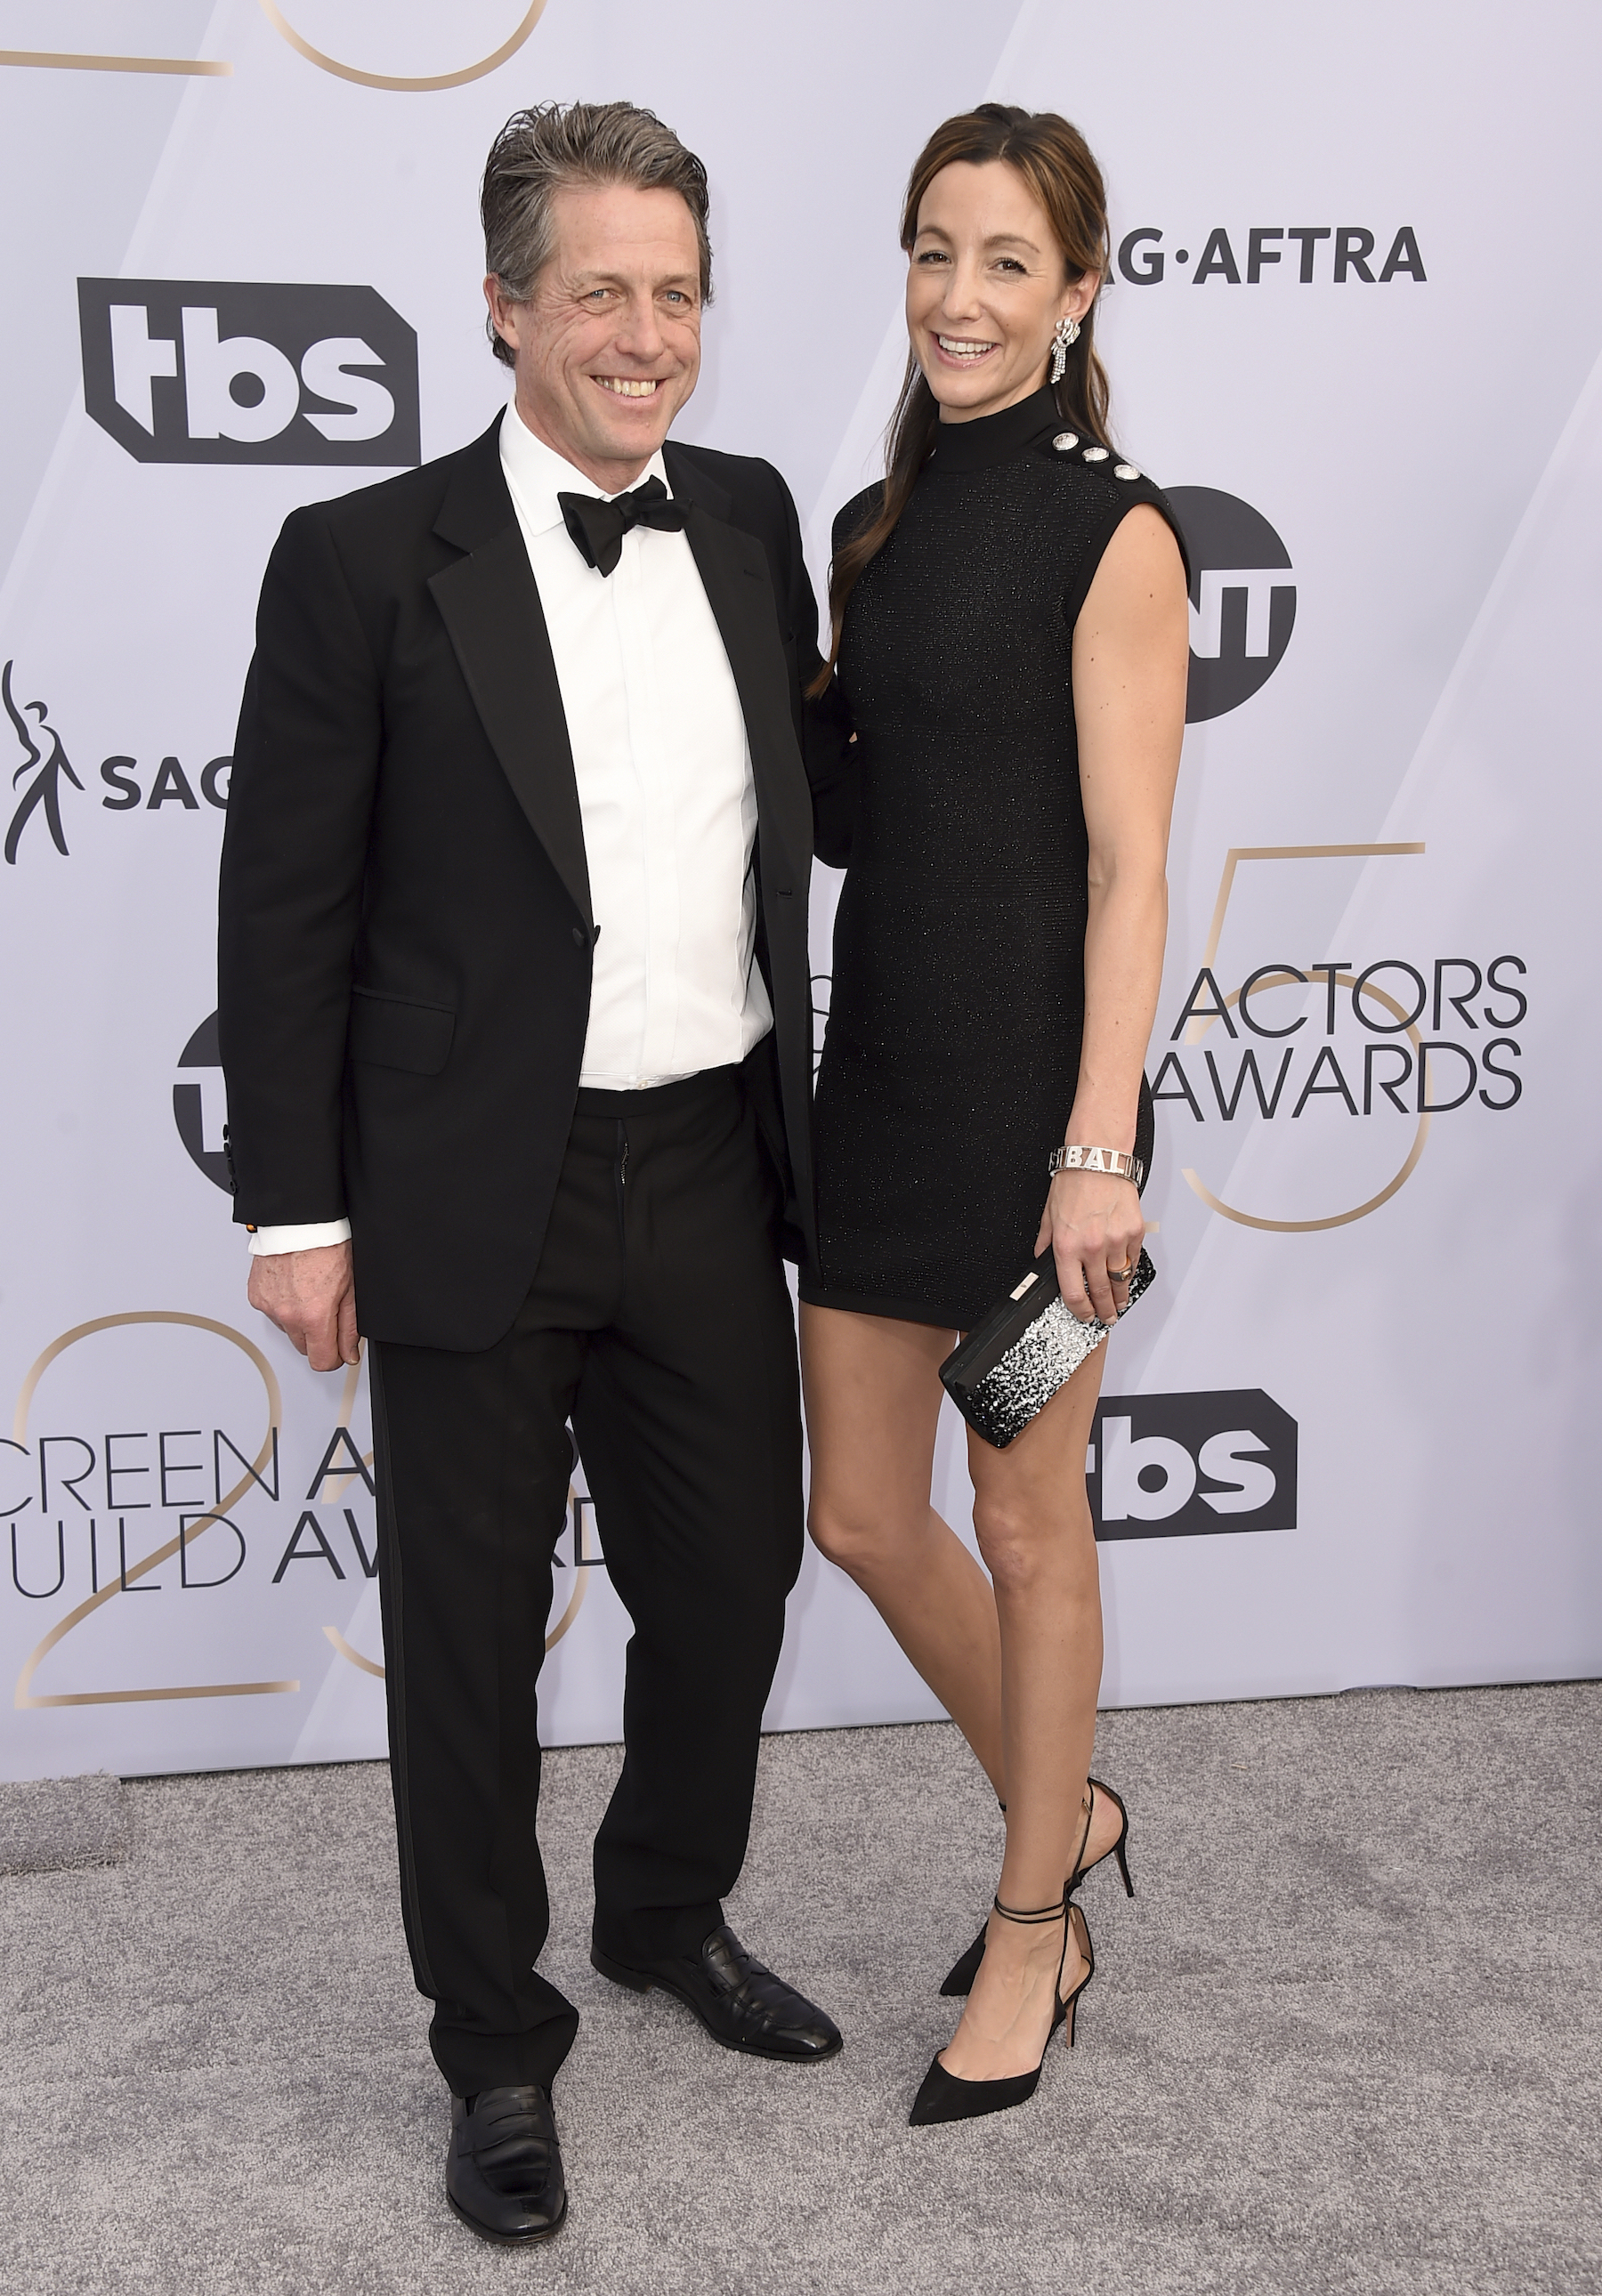 "<div class=""meta image-caption""><div class=""origin-logo origin-image ap""><span>AP</span></div><span class=""caption-text"">Hugh Grant, left, and Anna Elisabet Eberstein arrive at the 25th annual Screen Actors Guild Awards at the Shrine Auditorium & Expo Hall on Sunday, Jan. 27, 2019, in Los Angeles. (Jordan Strauss/Invision/AP)</span></div>"